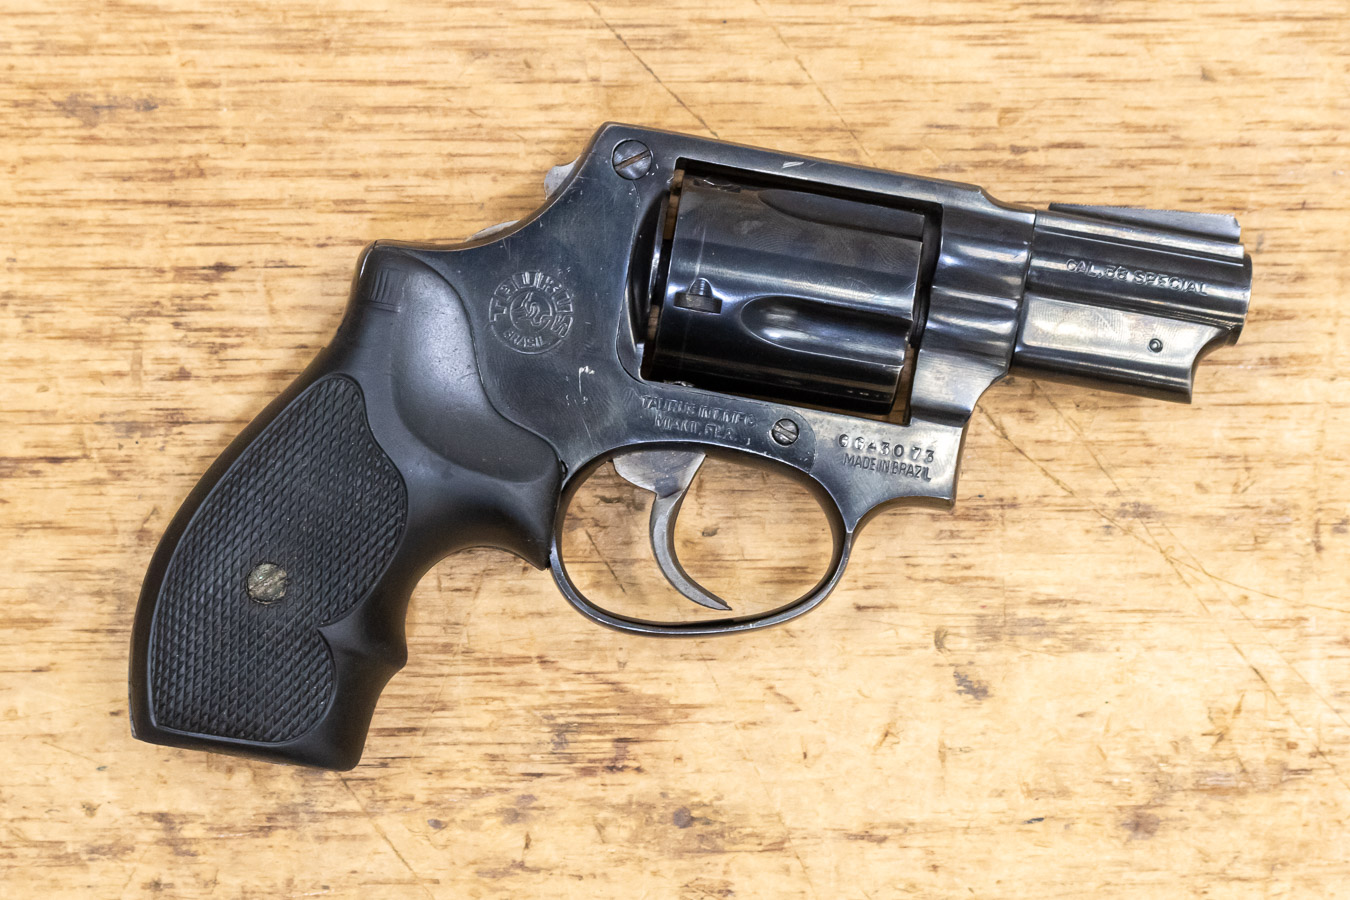 MODEL 85 38 SPECIAL USED TRADE-IN REVOLVER WITH BOBBED HAMMER